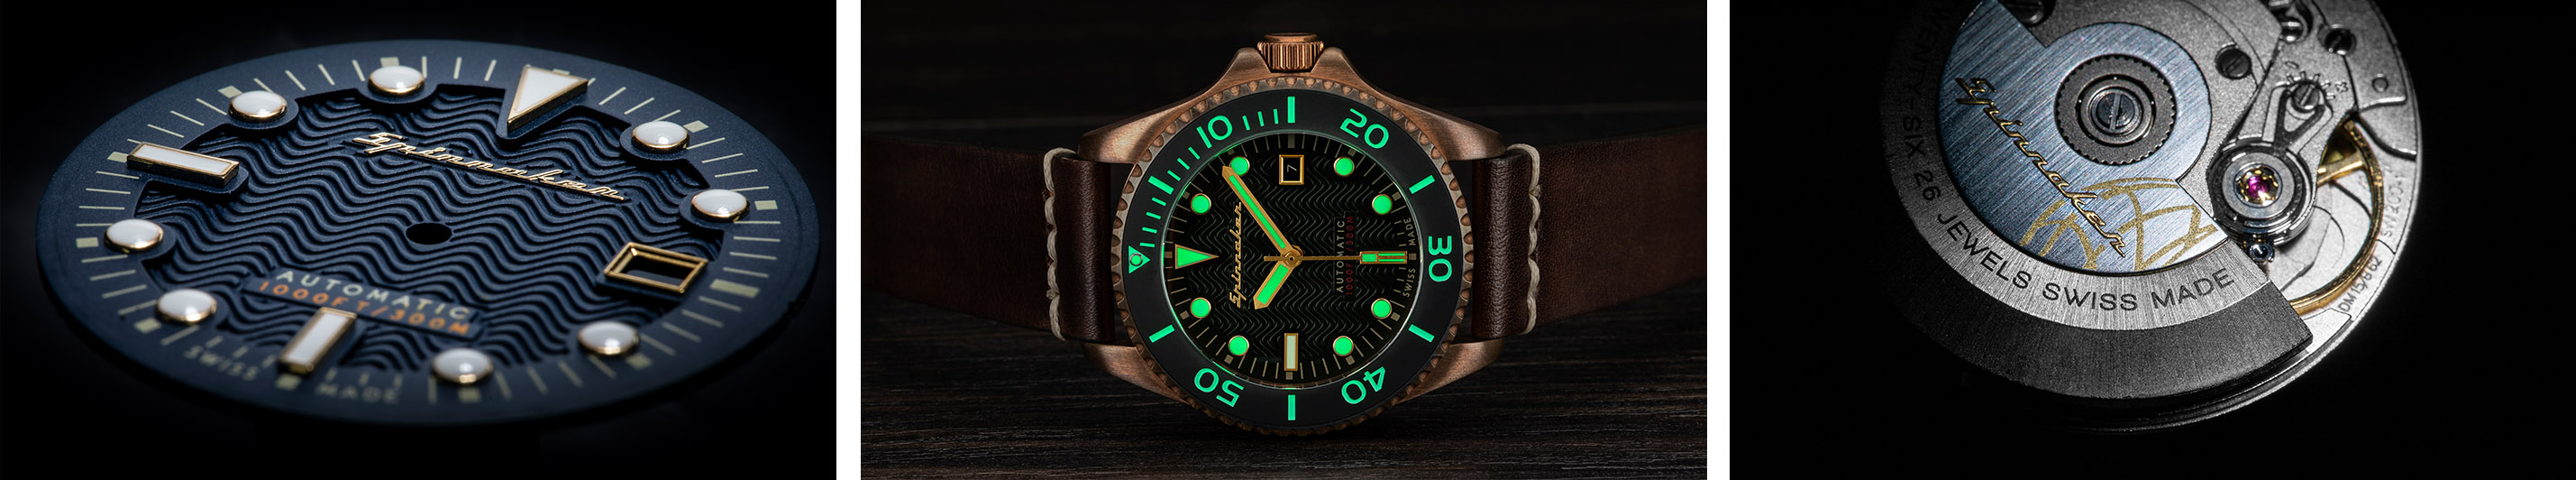 Spinnaker Tesei Watchandit Banner Dial, Lume shot, swiss made movement Sellita SW200